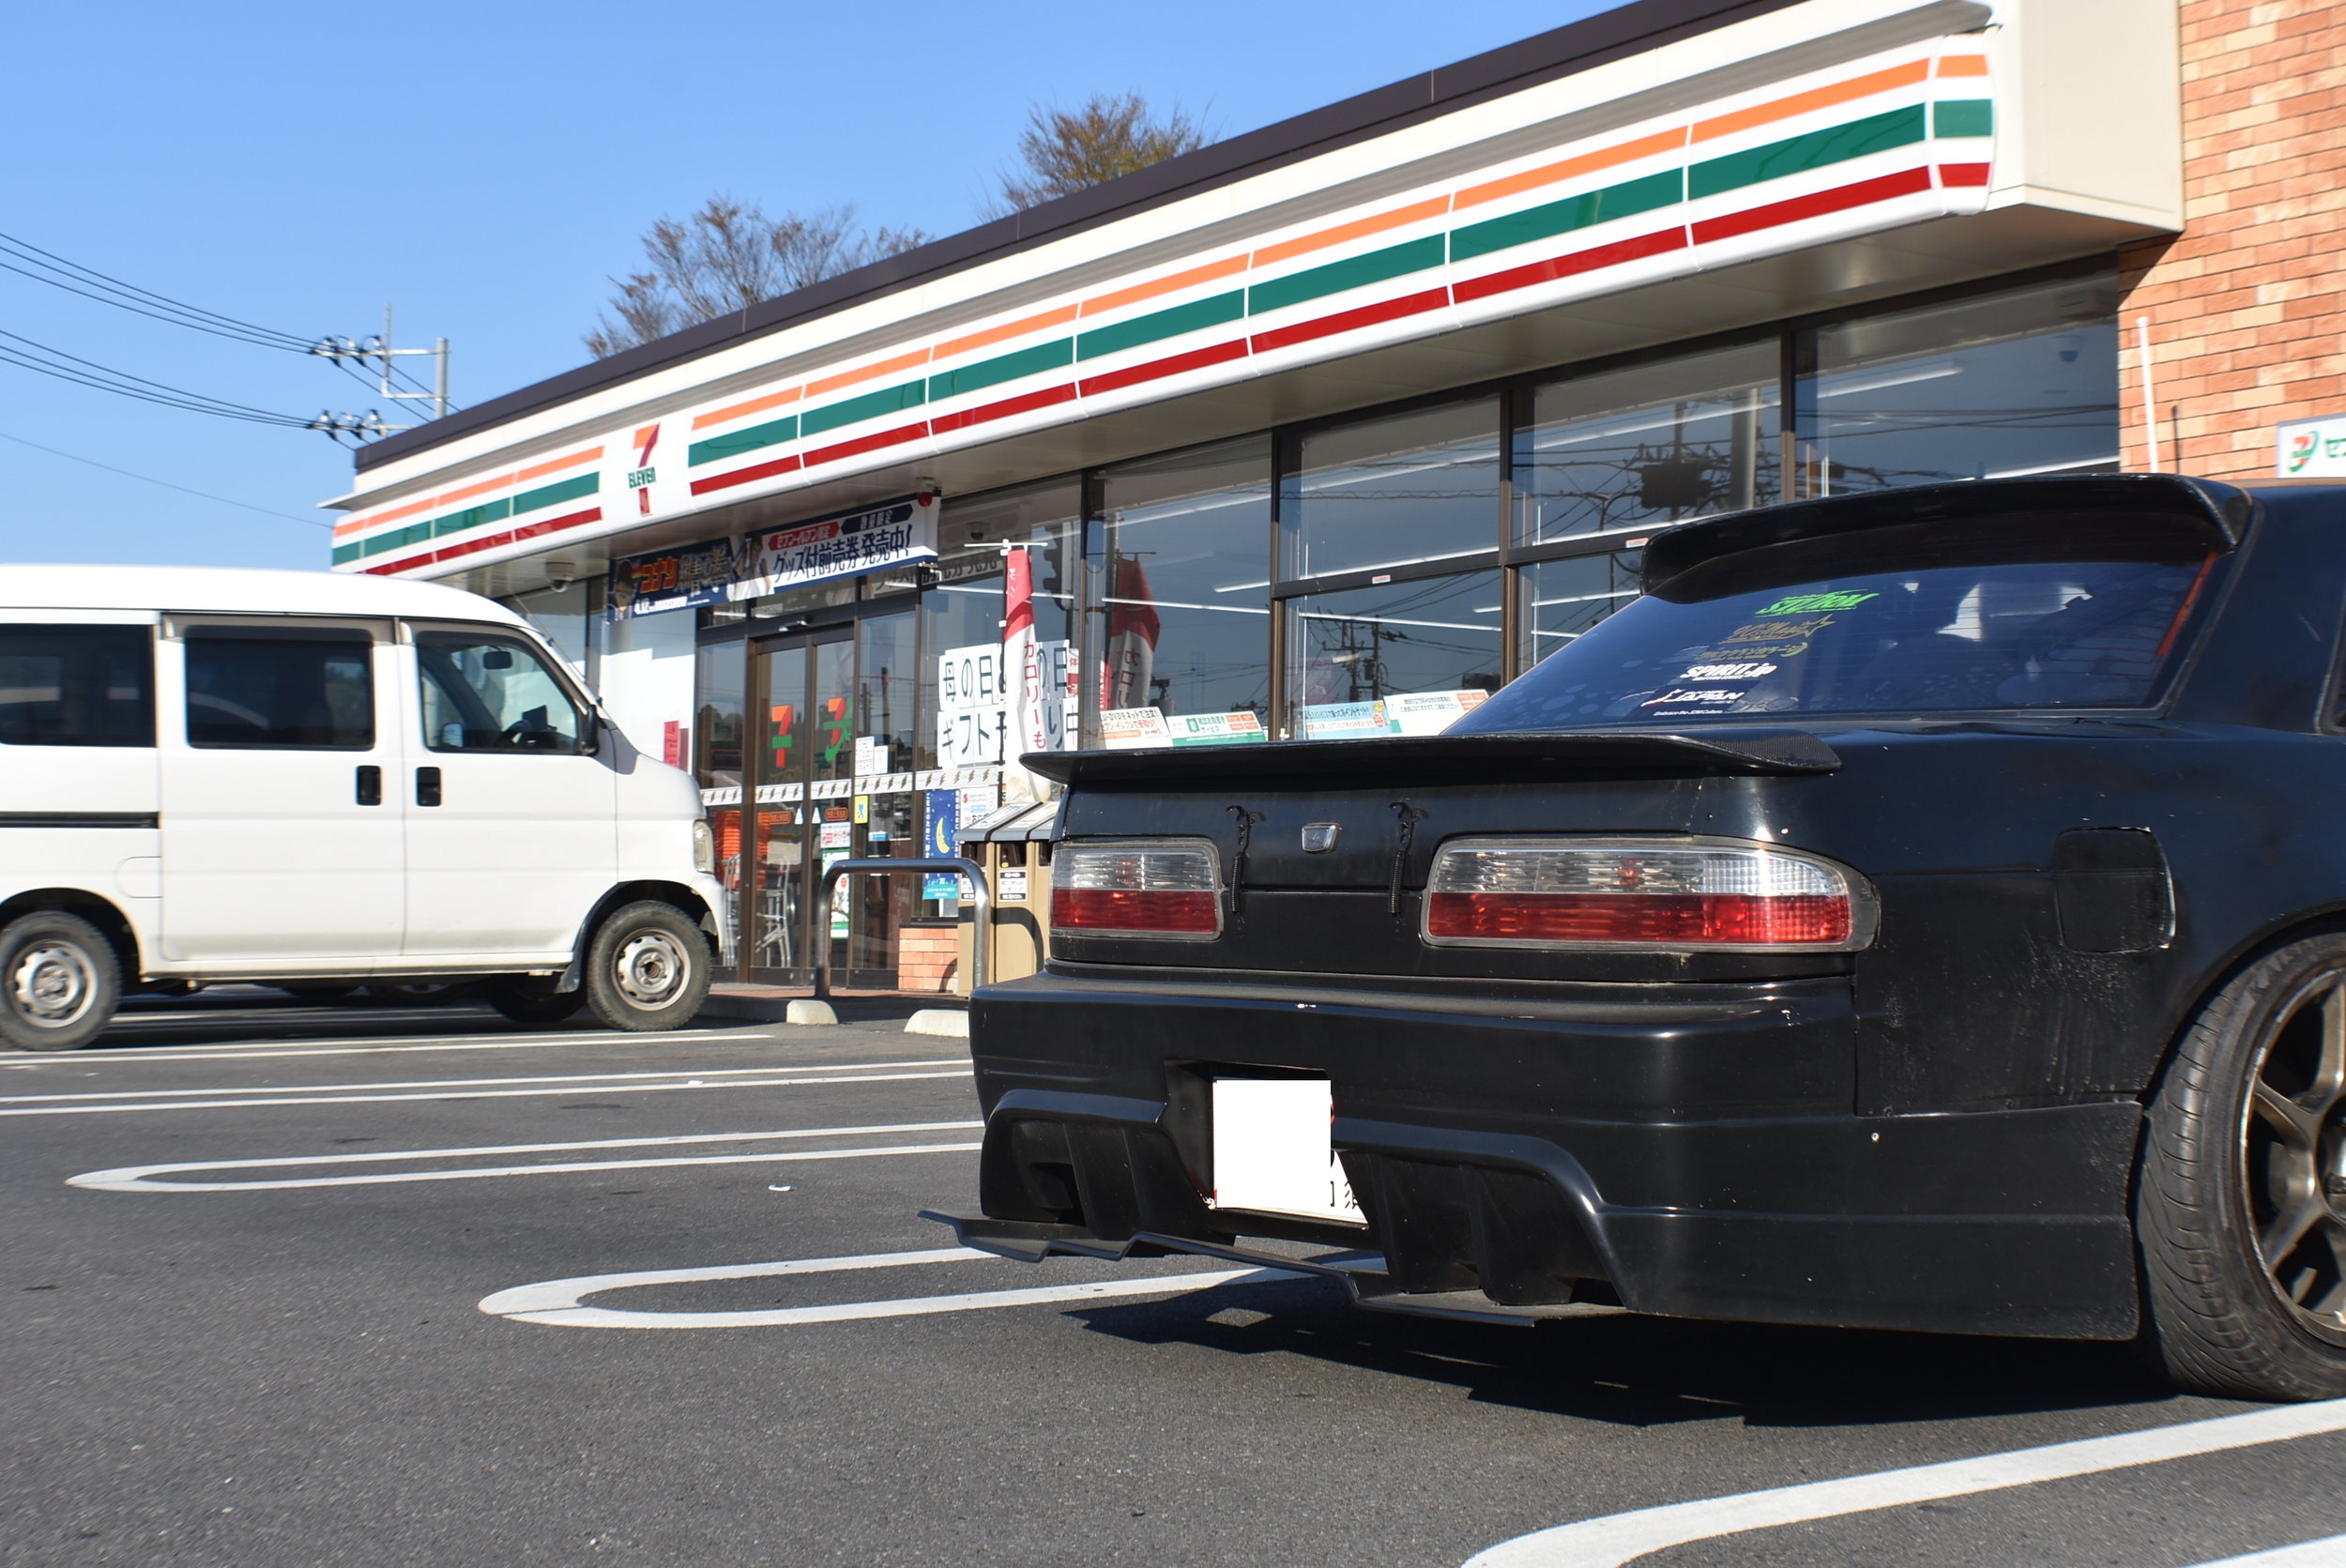 Usual stop at the 7/11 for some snacks.